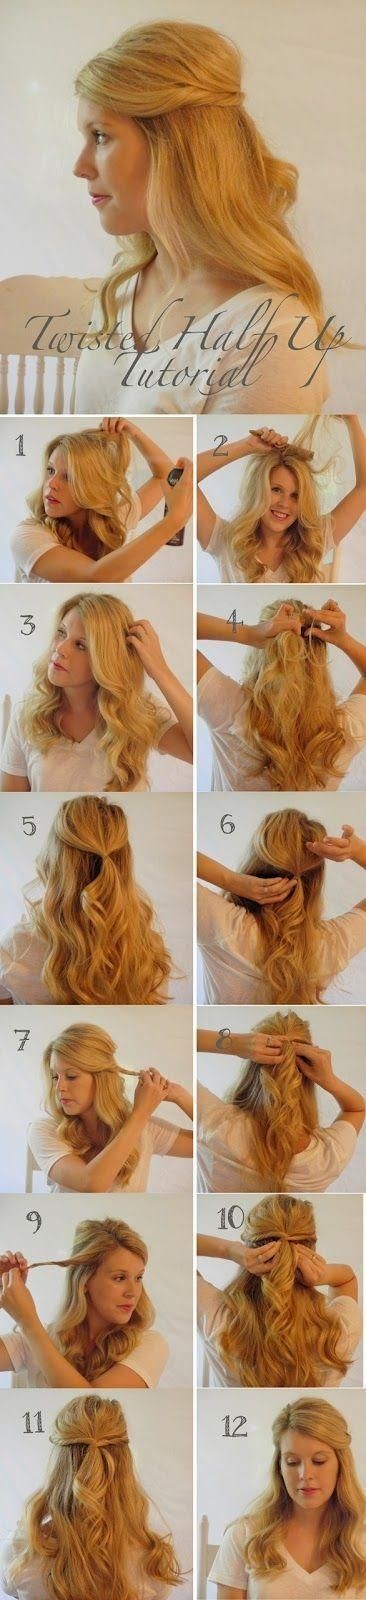 Twisted Half Up Half Down Hairstyle Ideas: Step By Step